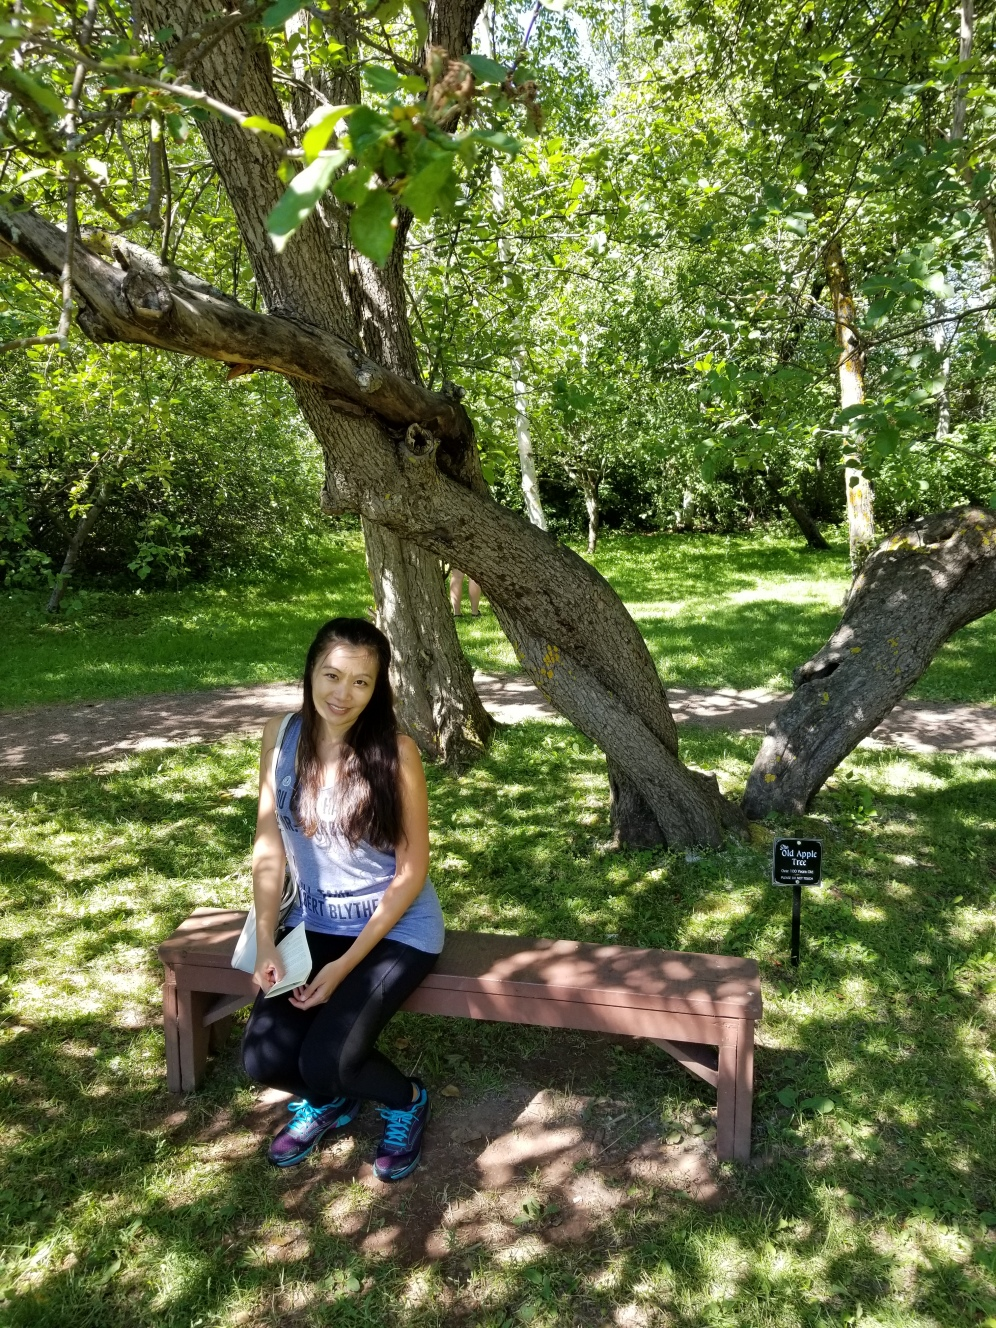 Under the apple tree where LM Montgomery liked to write